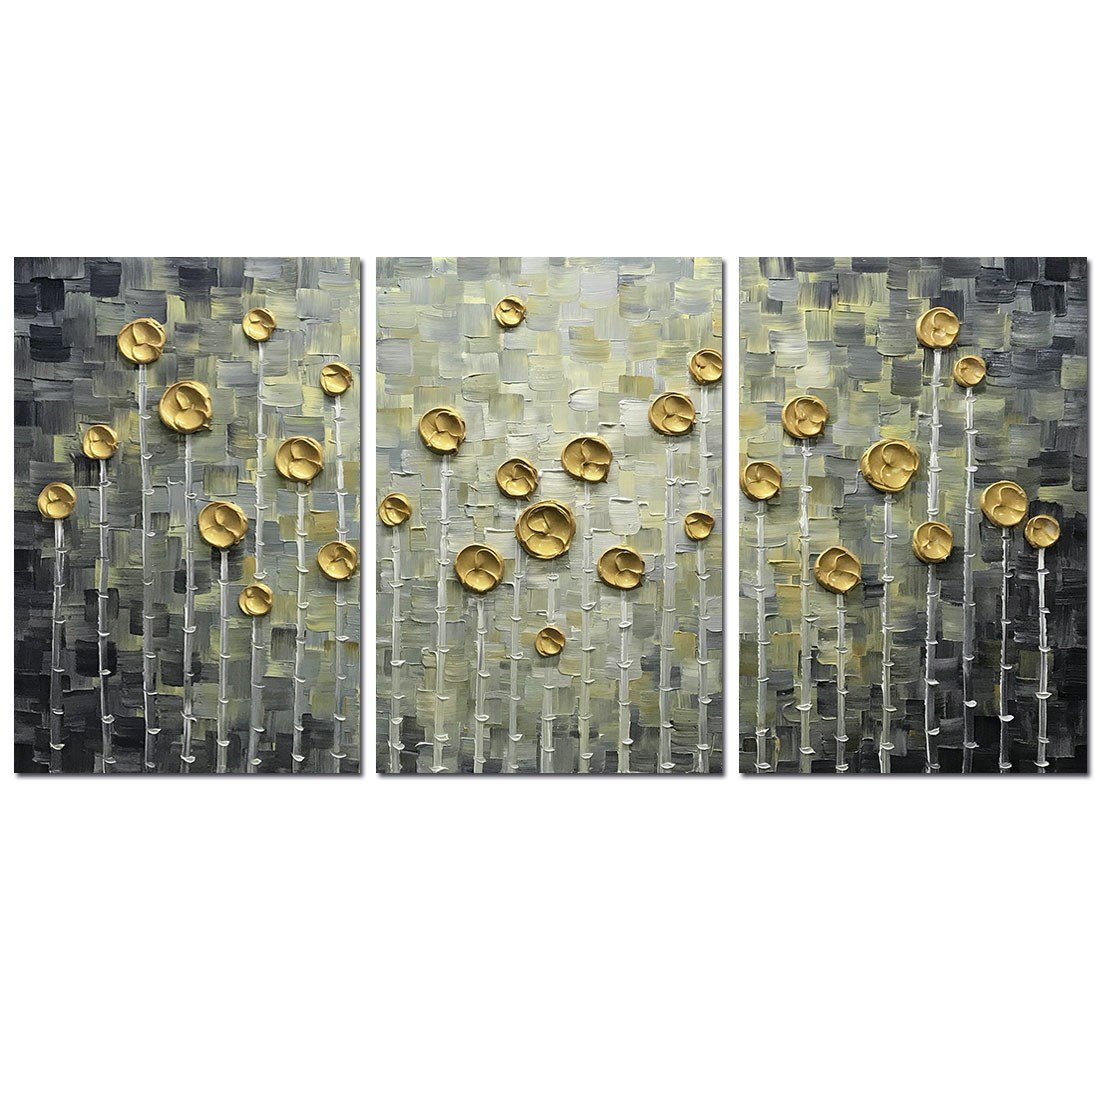 Asdam Art--3panels Large Art Hand Painted 3D Gold Rose Oil Painting On Canvas Black and Gold Floral Wall Art For Living Room Bedroom Hallway Home Office Wall DWecor(20x30inchx3)